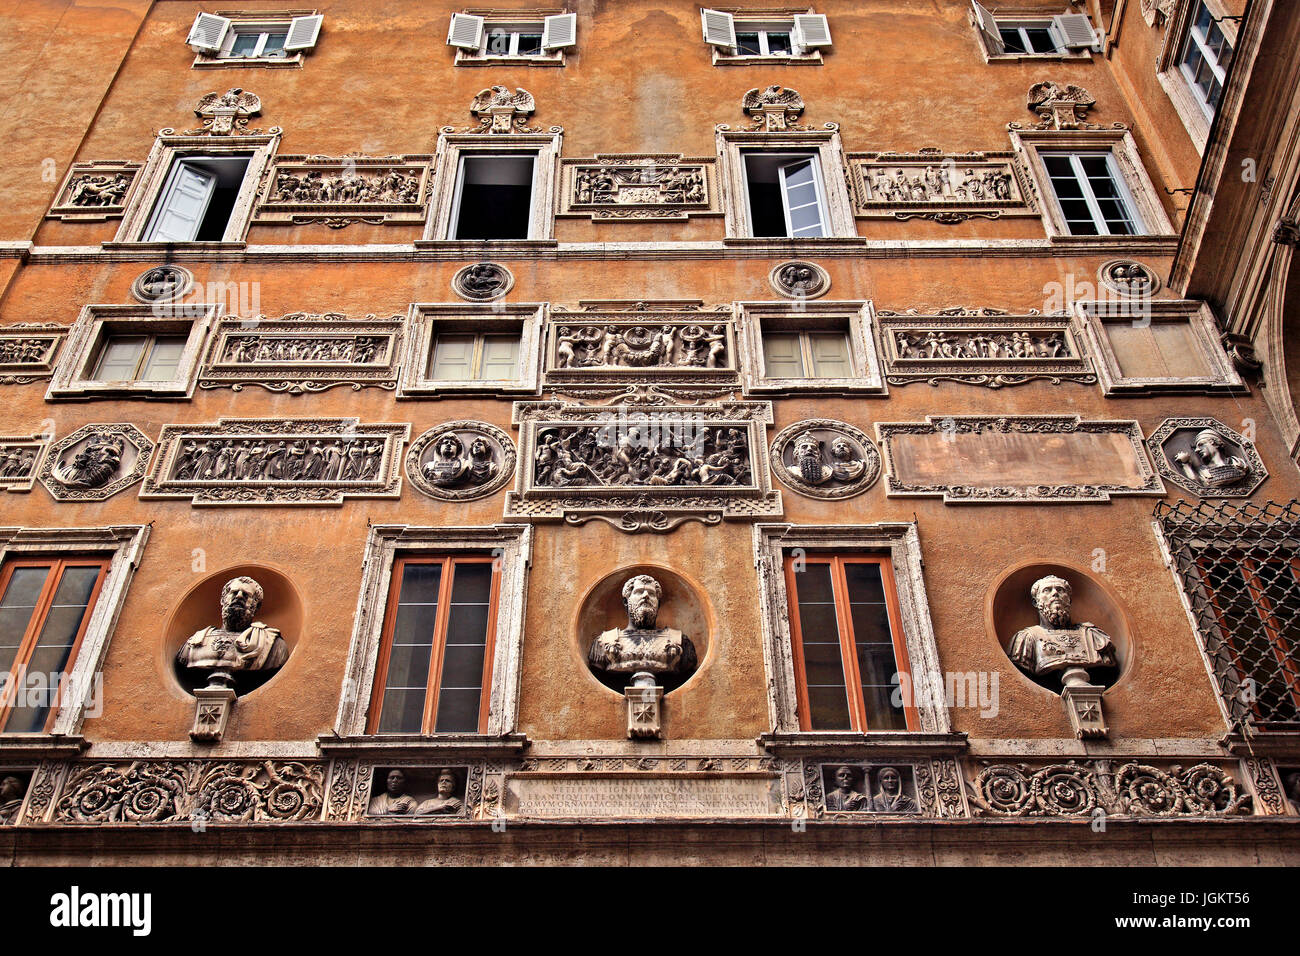 In the courtyard of the Centro Italiano Studi Americani (Italian Center for American Studies), Rome, Italy. - Stock Image